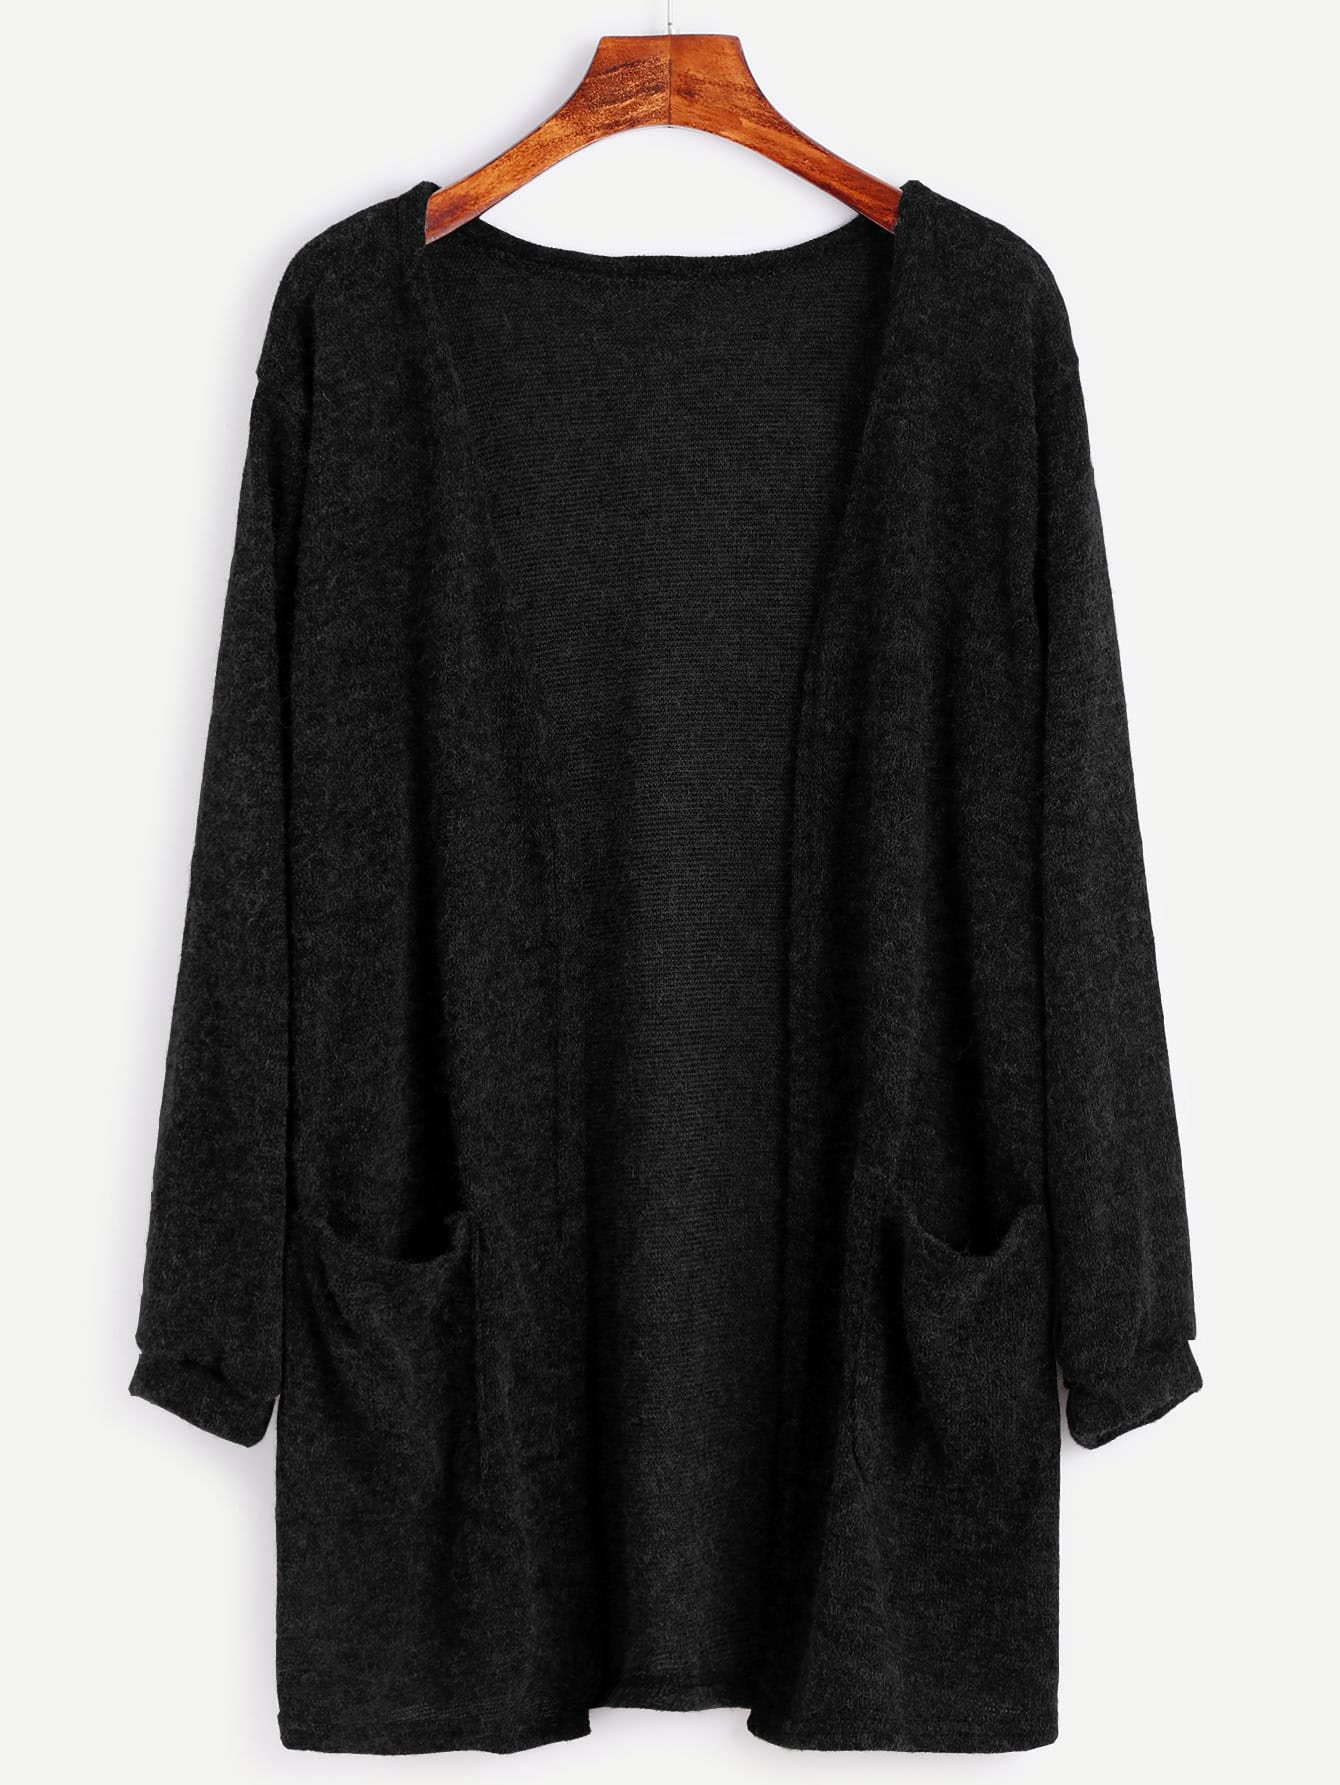 Fuzzy Cardigan Sweater With Pockets -SheIn(Sheinside)